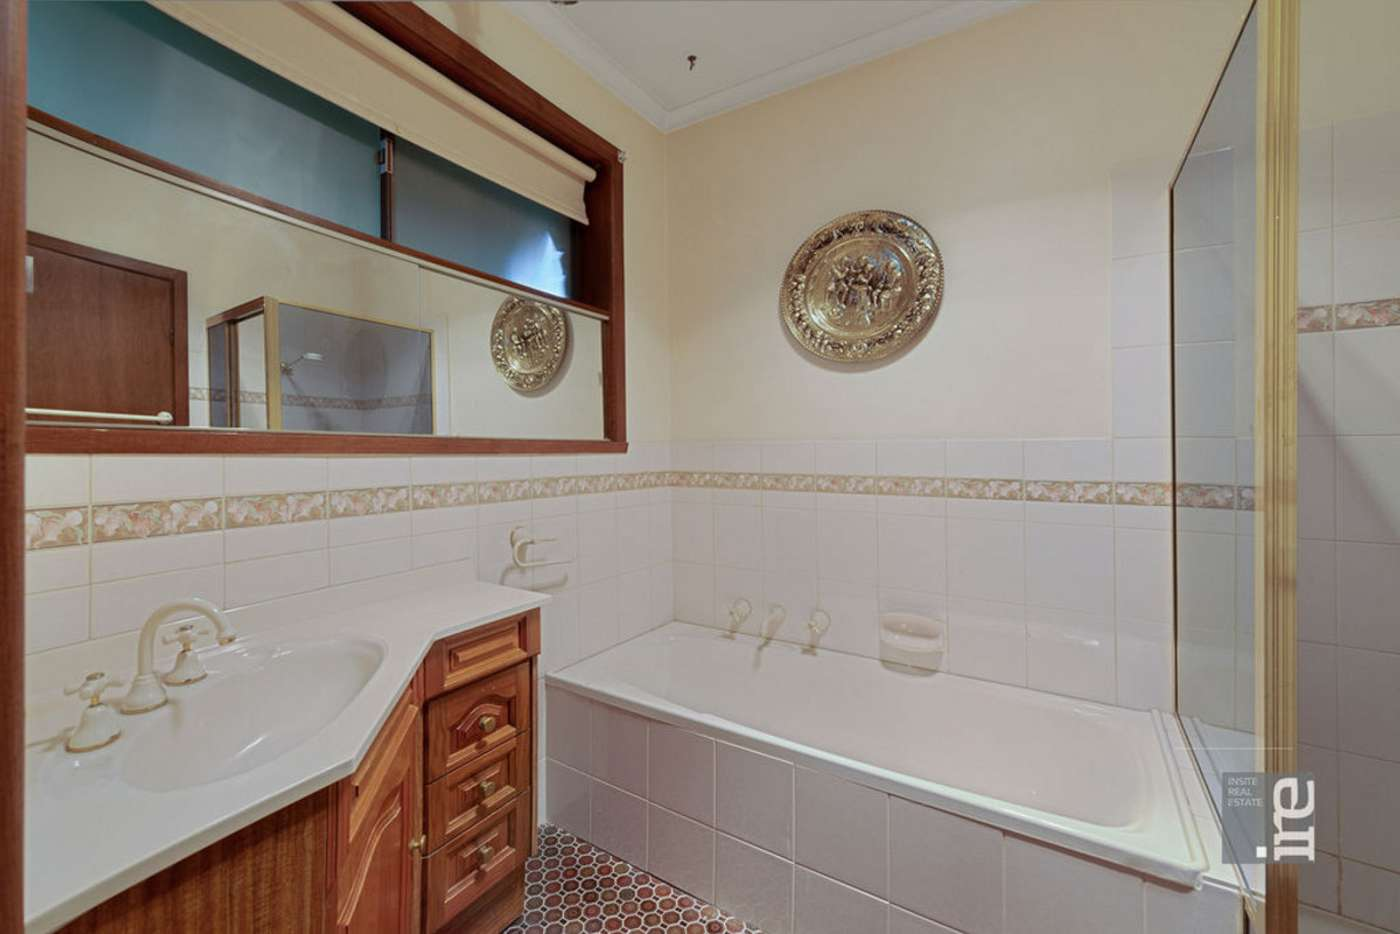 Seventh view of Homely house listing, 49 Franklin Street, Wangaratta VIC 3677